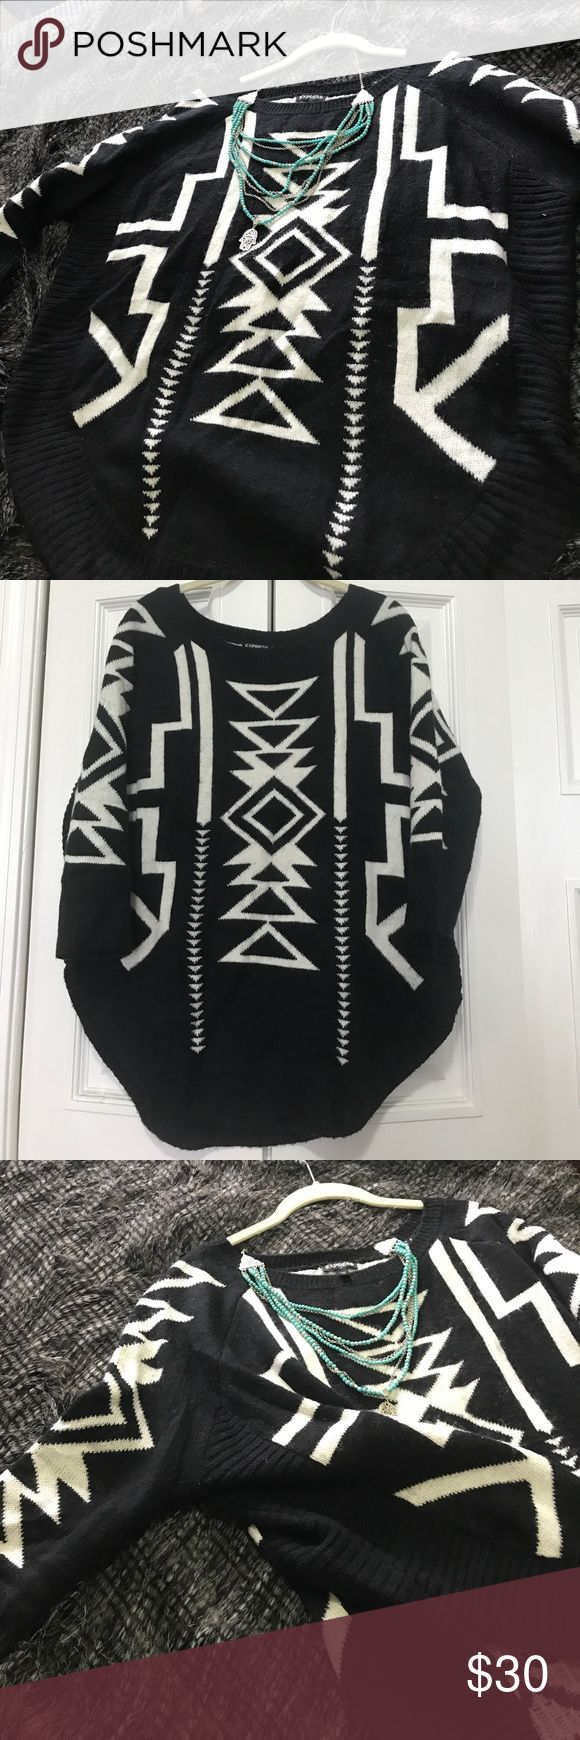 Express Black & White Tribal Sweater Knitted black and white tribal express sweater. Quarter length sleeves. Oversized fit size M. Super cozy and trendy! Express Sweaters Shrugs & Ponchos